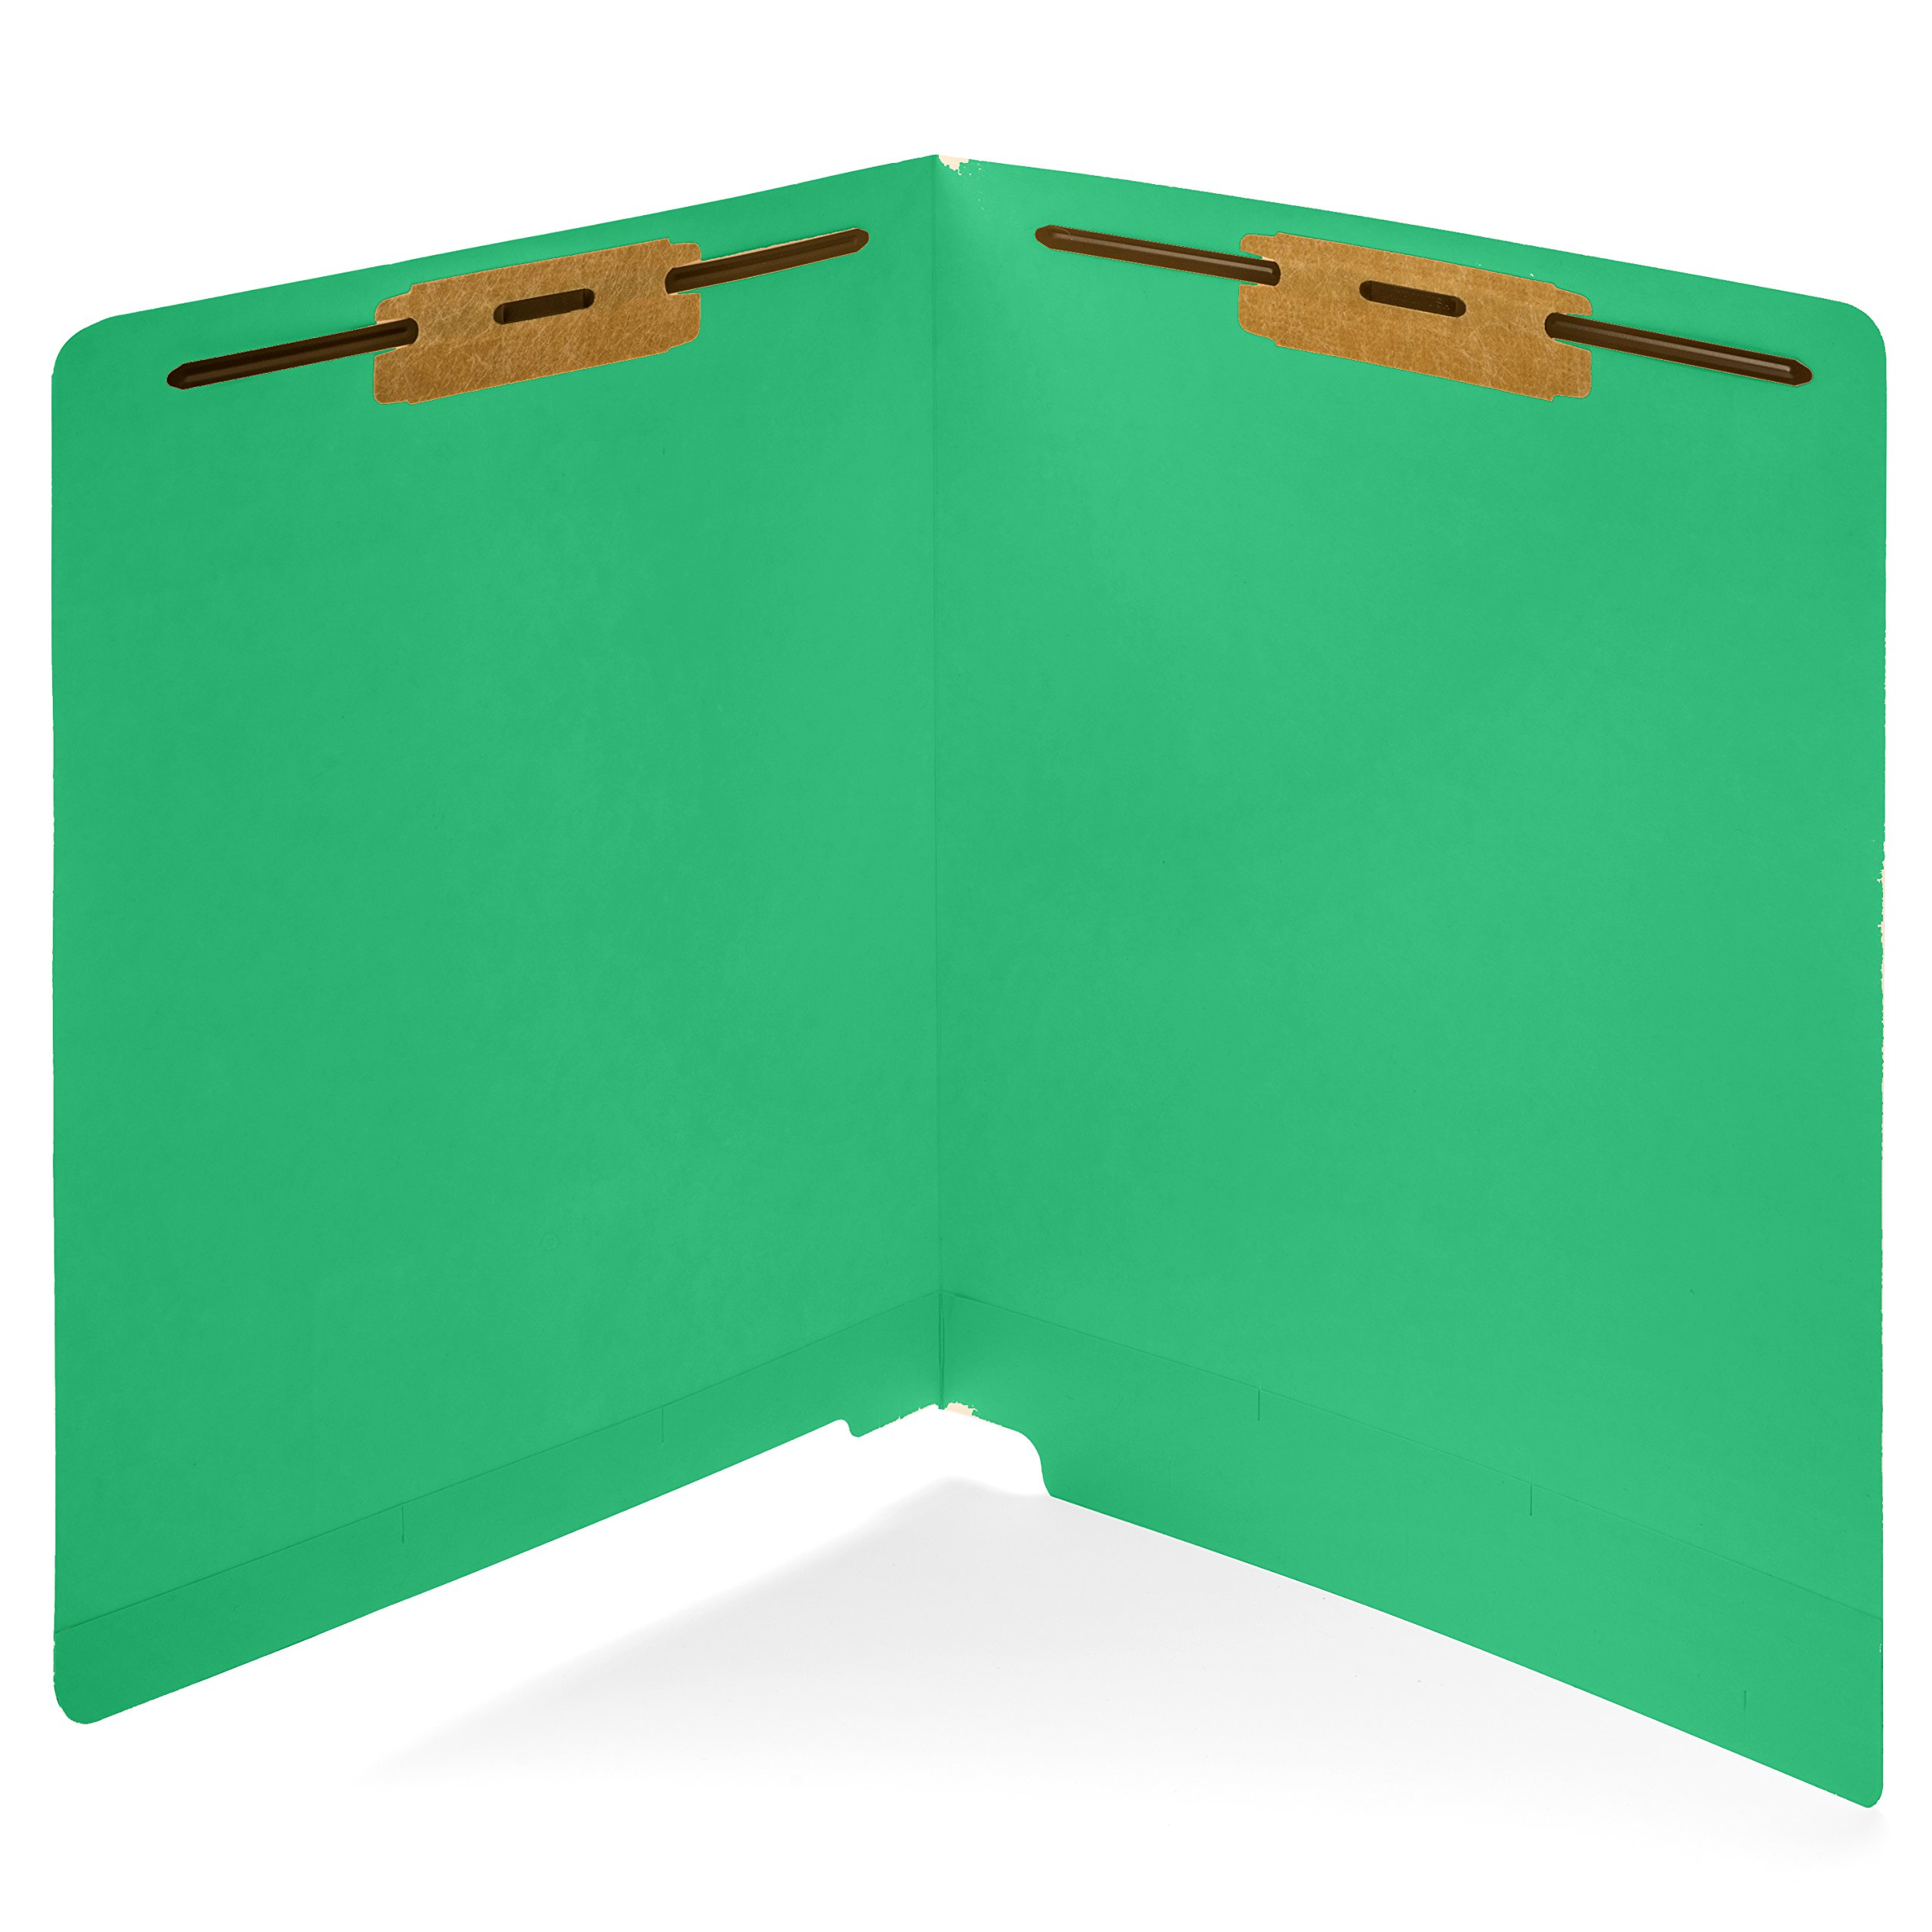 50 Green End Tab Fastener File Folders- Reinforced Straight Cut Tab- Durable 2 Prongs Designed to Organize Standard Medical Files, Receipts, Office Reports, and More - Letter Size, Green, 50 Pack